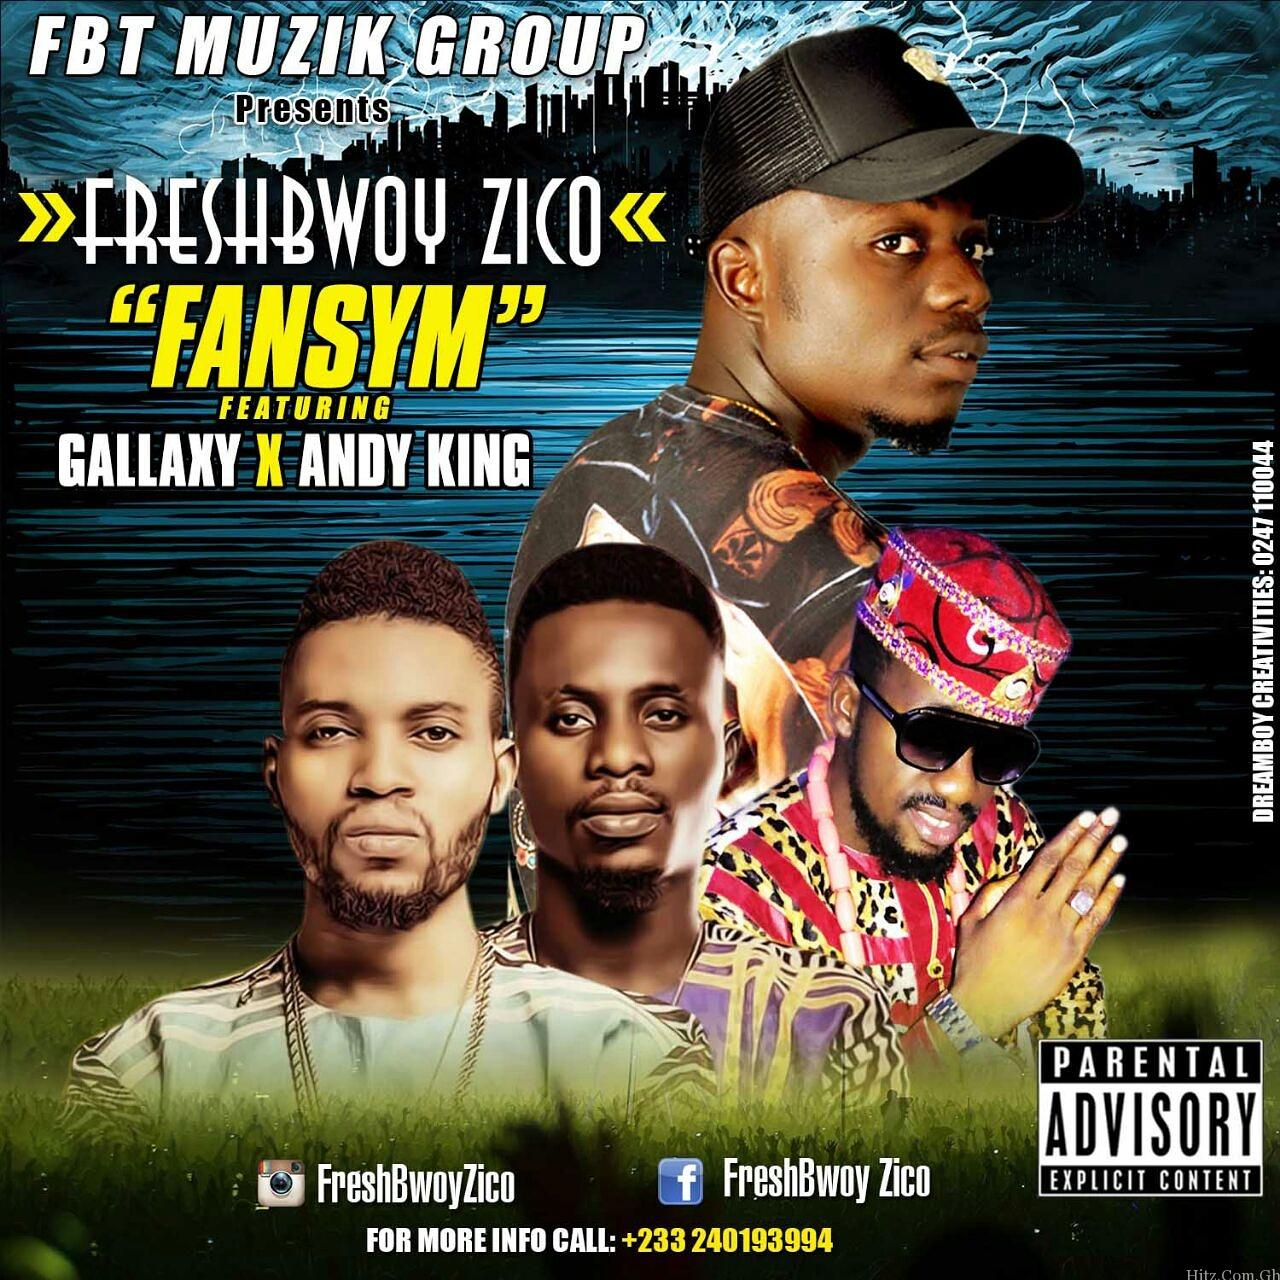 Freshbwoy Zico - Fansym ft Gallaxy & Andy King (Mixed By Killerz Vypa)